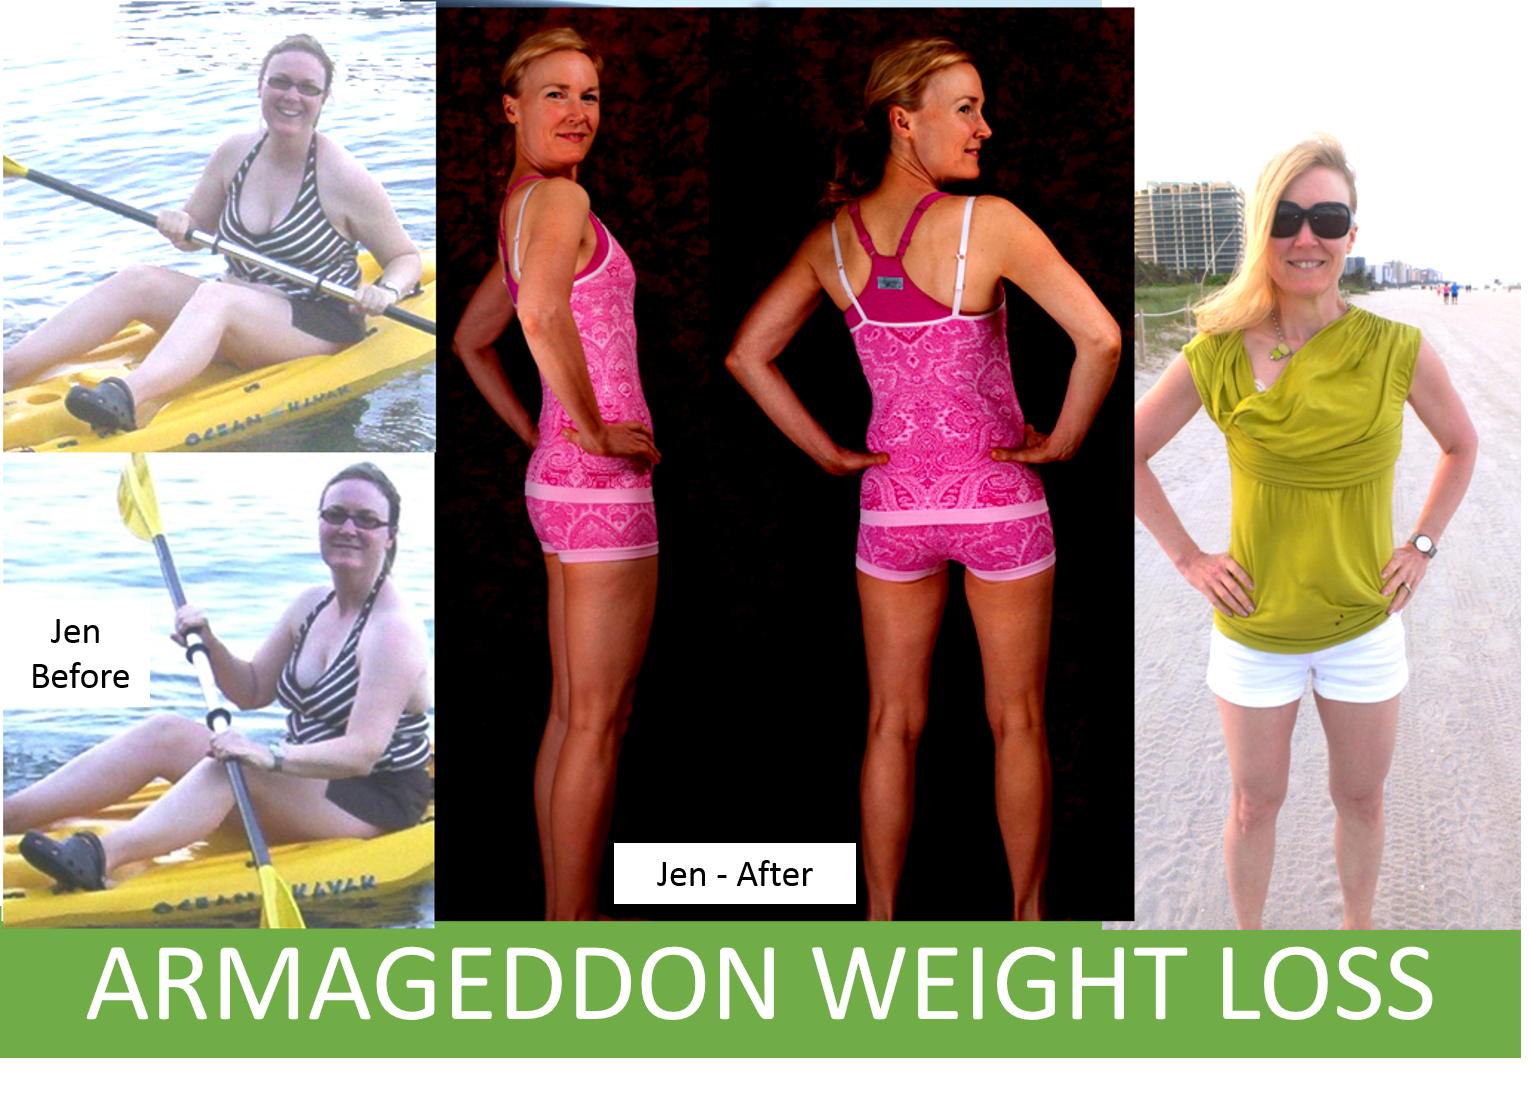 With Armageddon Weight Loss Jen learned how to lose weight fast and how to get rid of cellulite fast based on hard science. She focused less on fast weight loss plans and instead focused on how to achieve sustainable results. To get serious long-term results avoid workout DVDs that are not holistic and personalized to you.